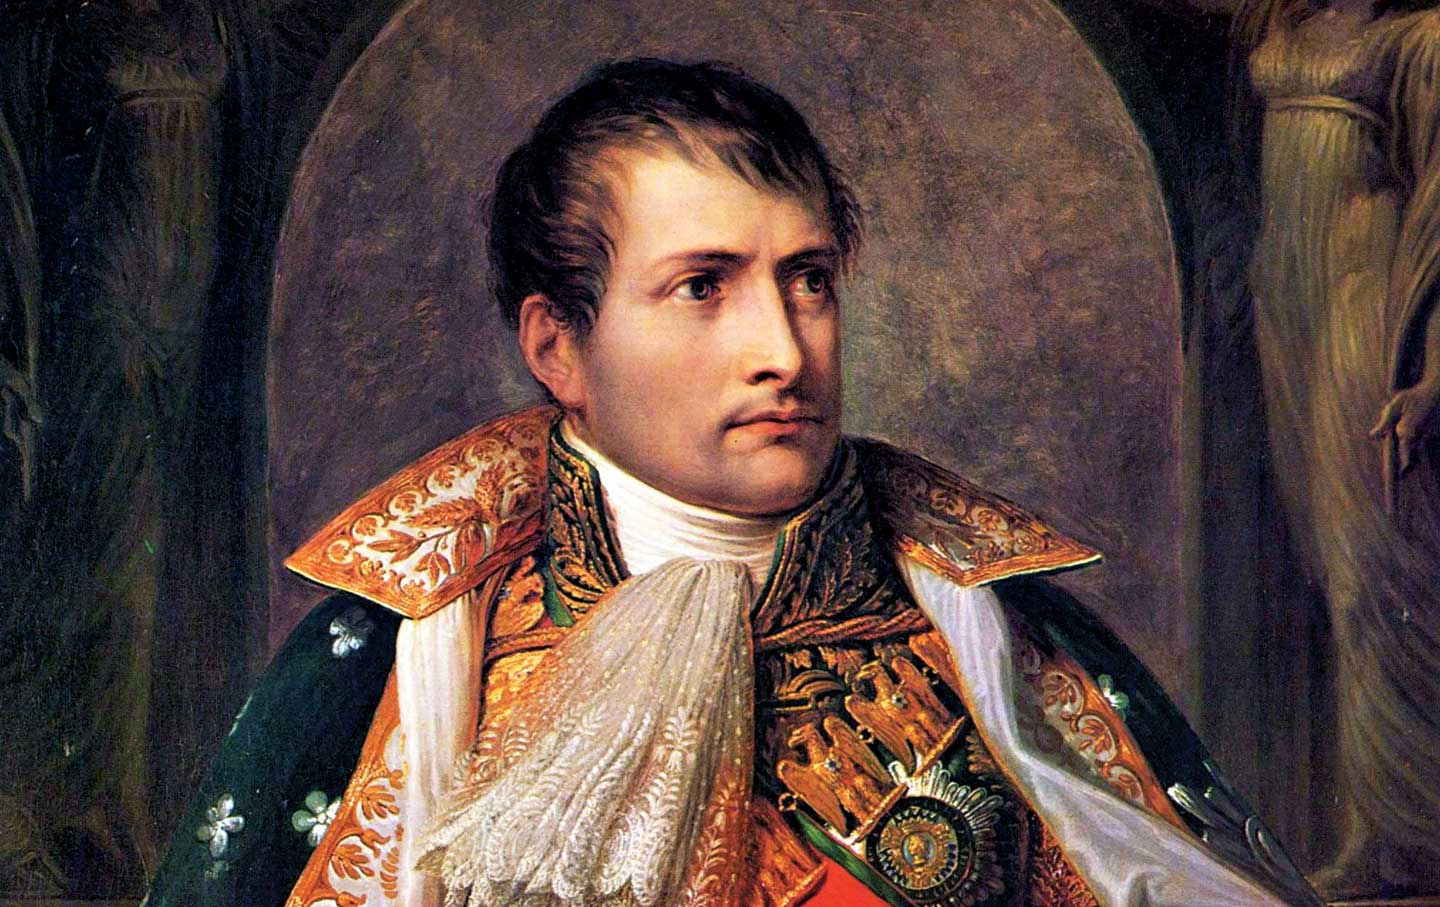 Napoleon-depicted-as-king-of-Italy-in-a-painting-by-Andrea-Appiani-1805